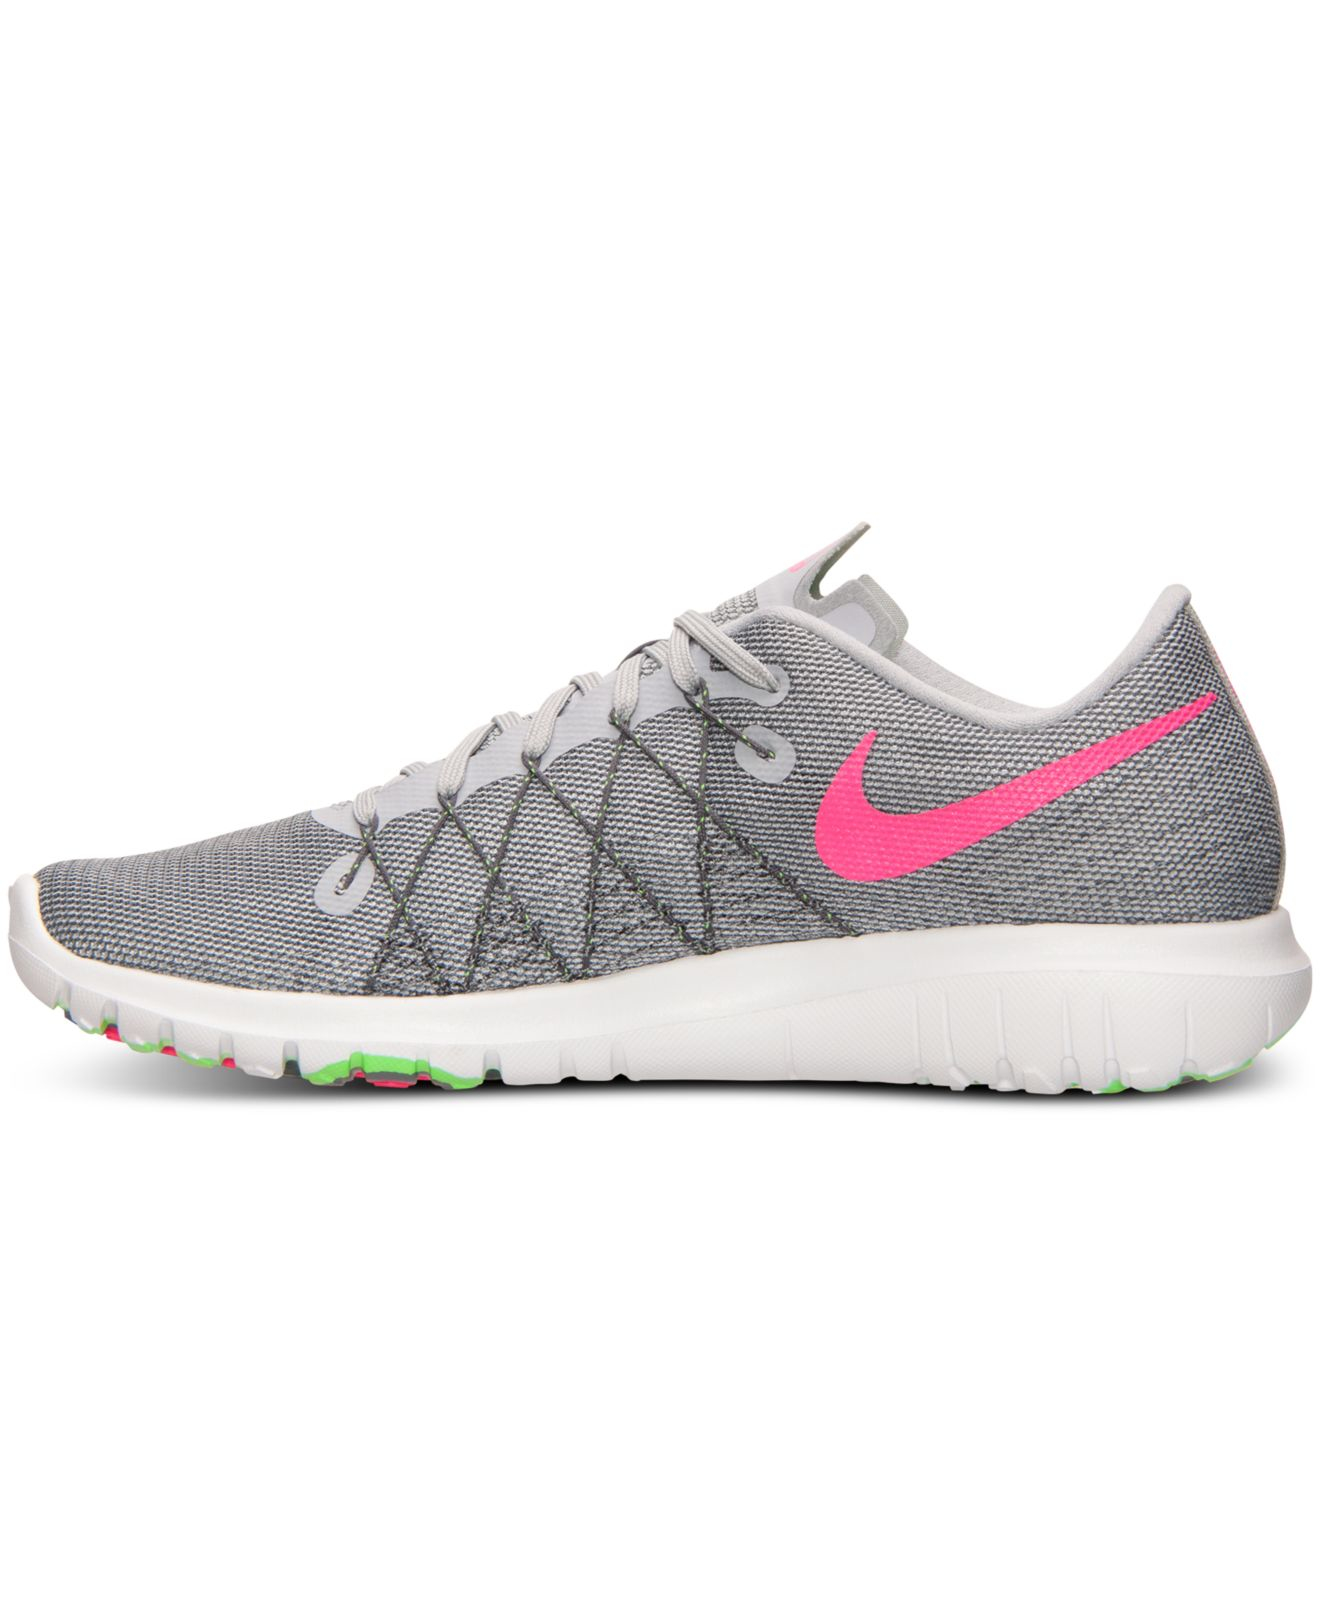 Lyst - Nike Women s Flex Fury 2 Running Sneakers From Finish Line in ... 66e81781db